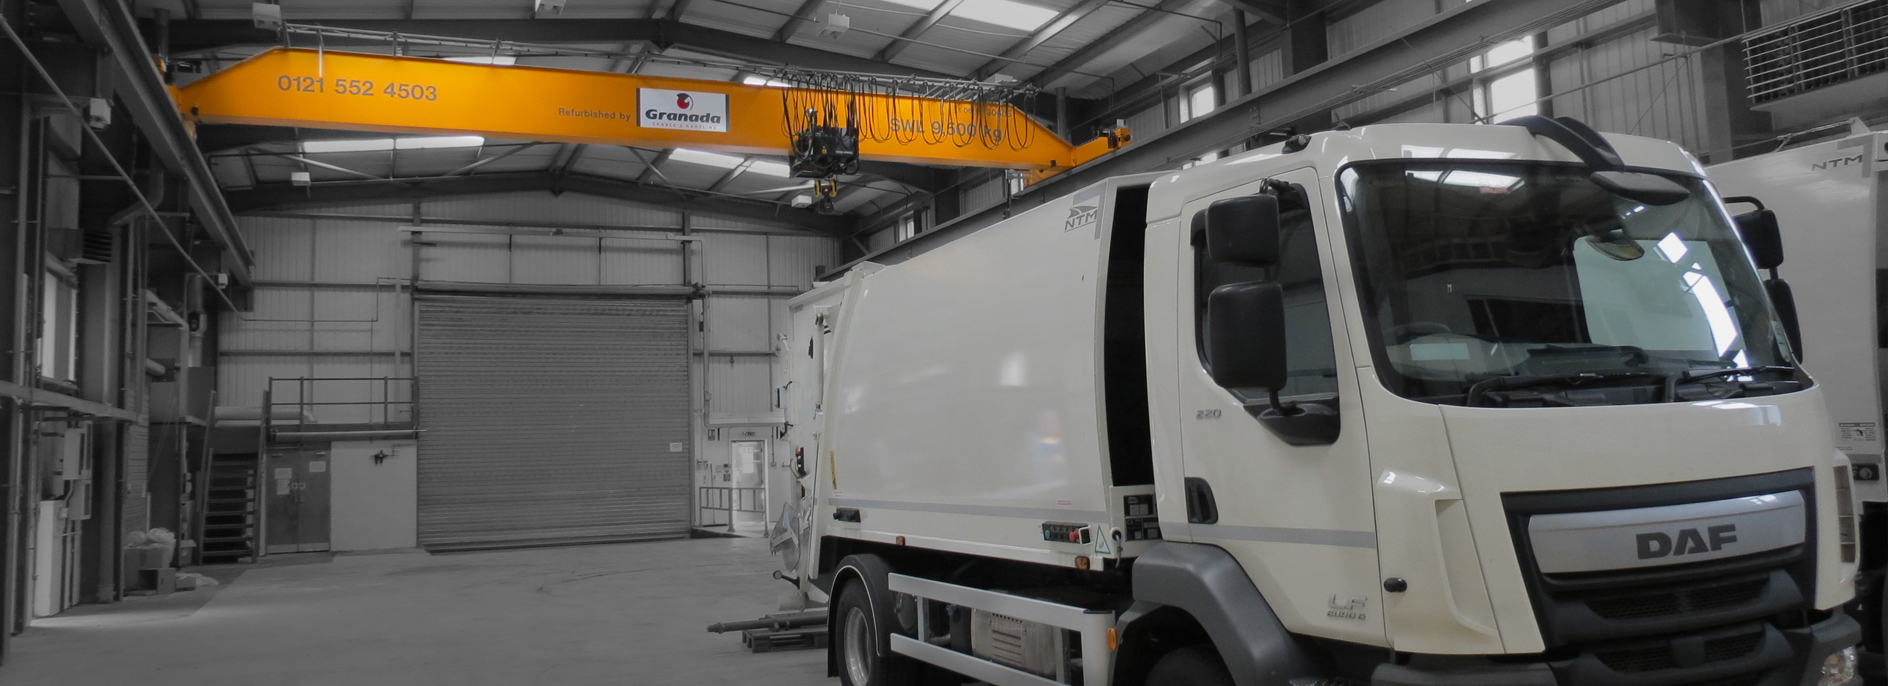 Granada Cranes lifting equipment and overhead cranes used at a refuse collection vehicle manufacturer